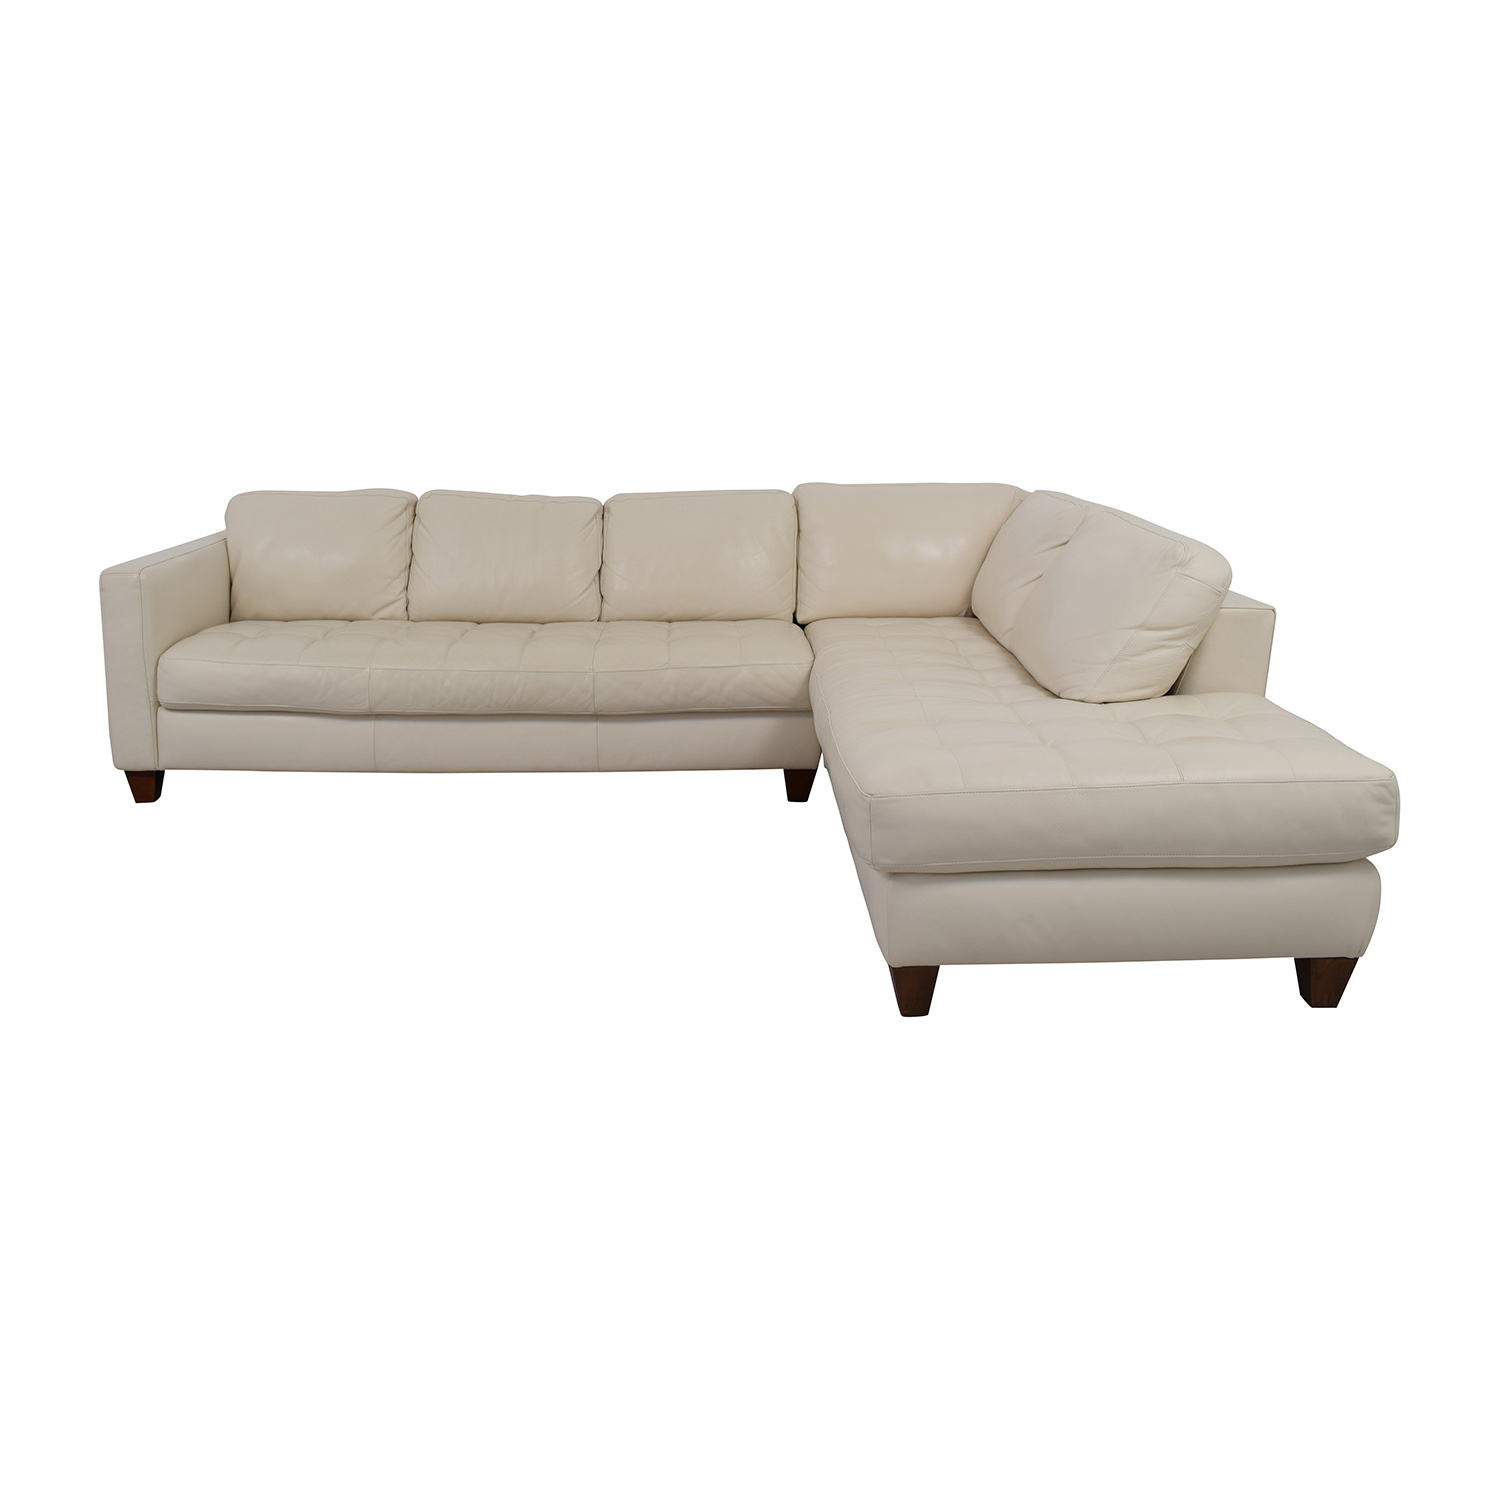 72 Off Macy S Milano White Leather Two Piece Sofa Sofas